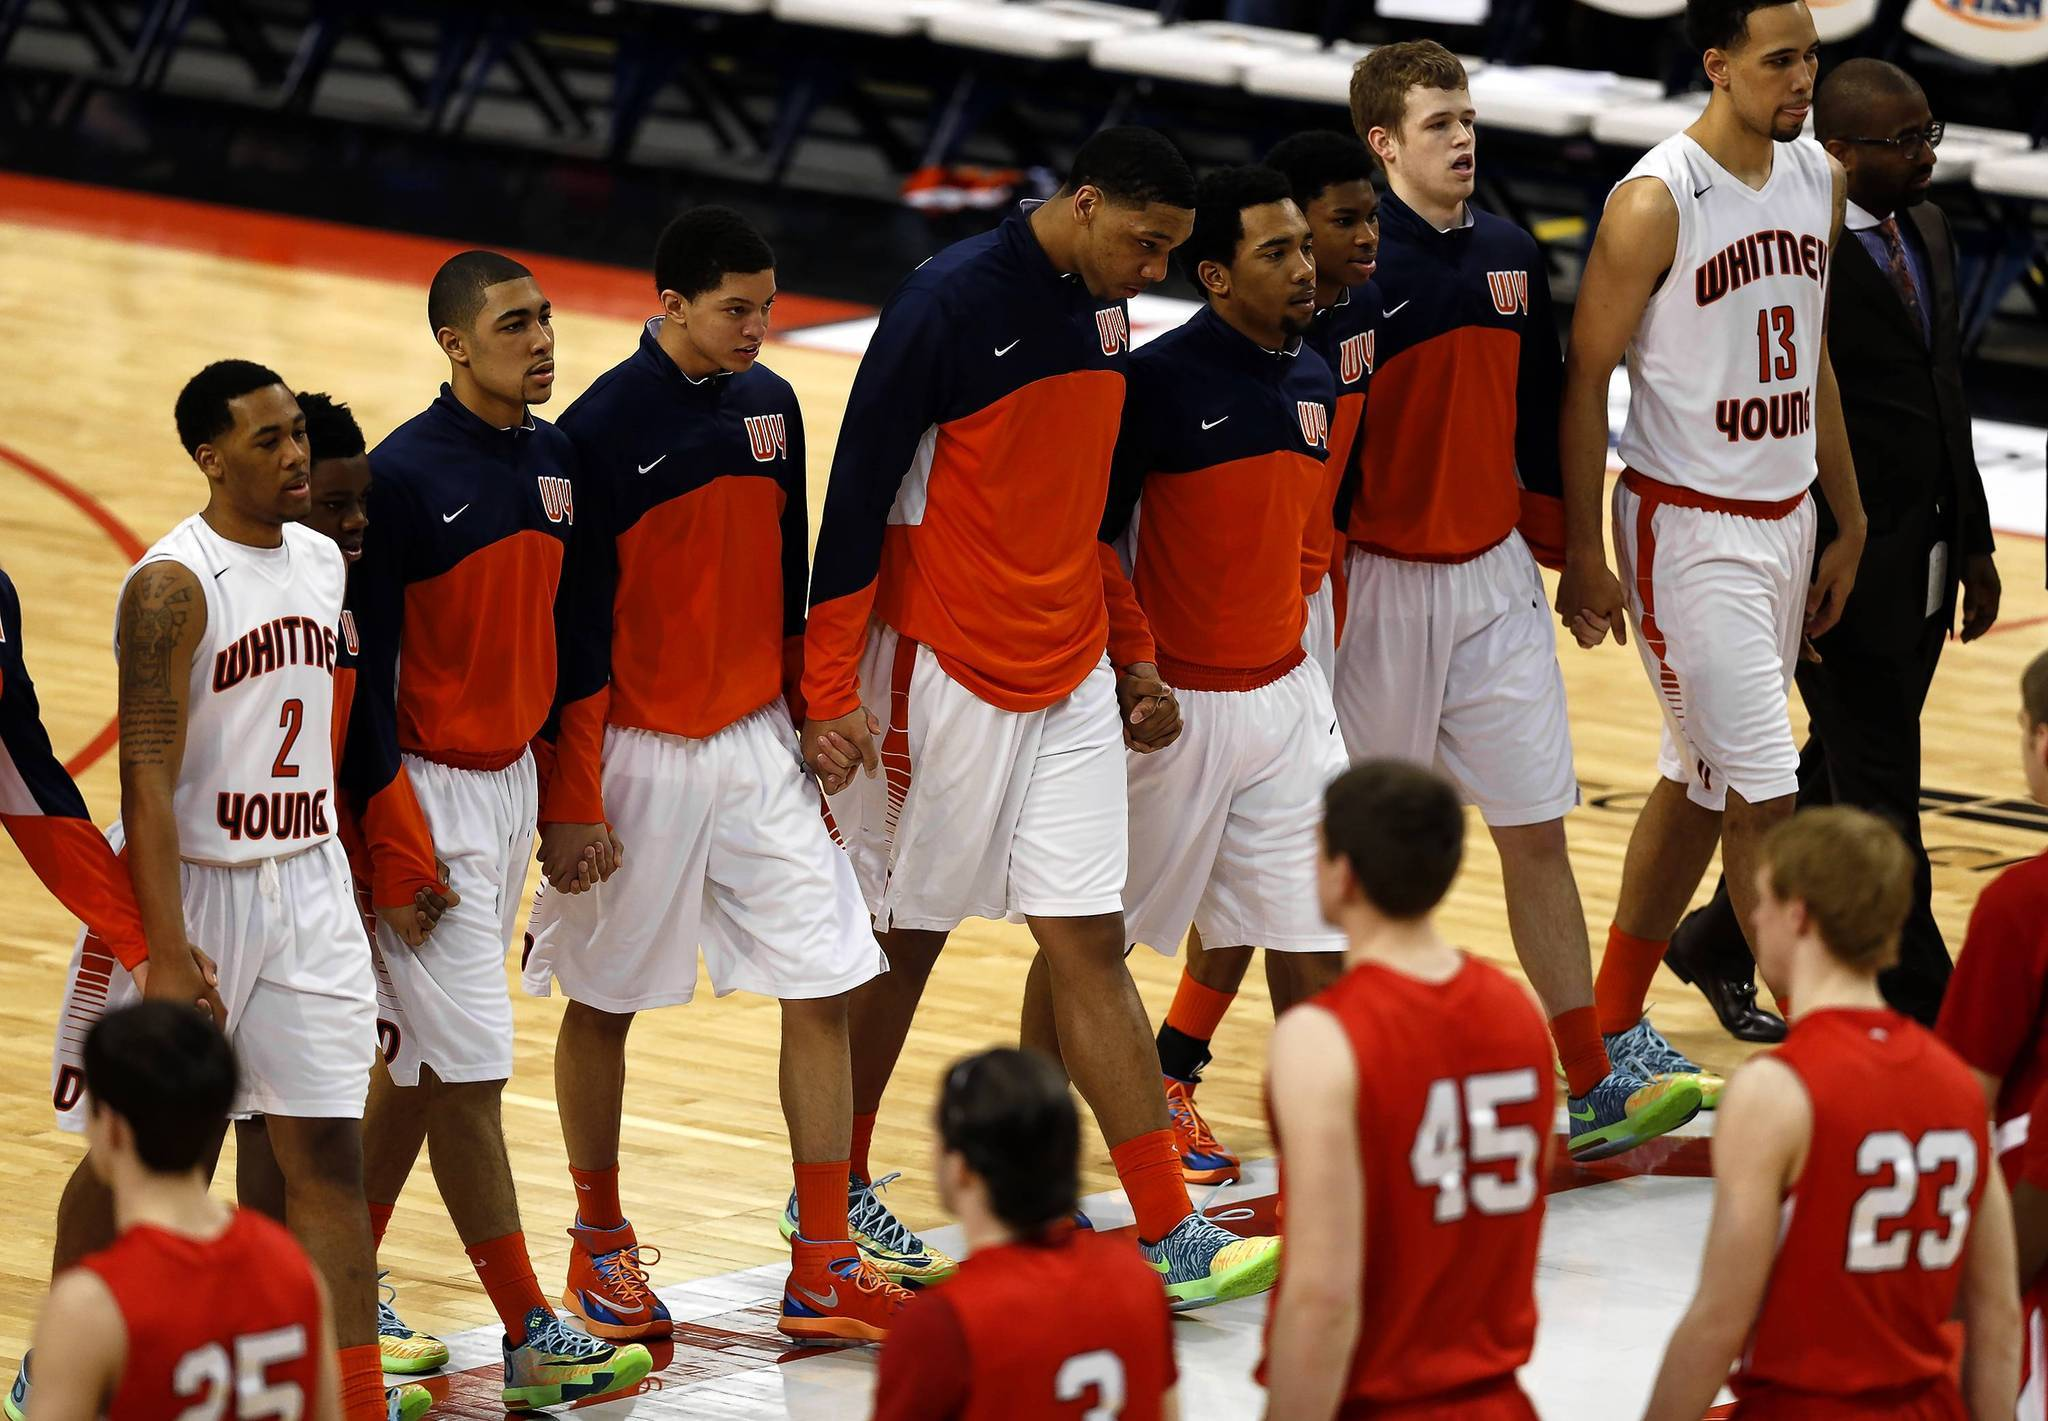 Whitney Young's Jahlil Okafor and his teammates walk hand in hand to shake with Benet before the state final.